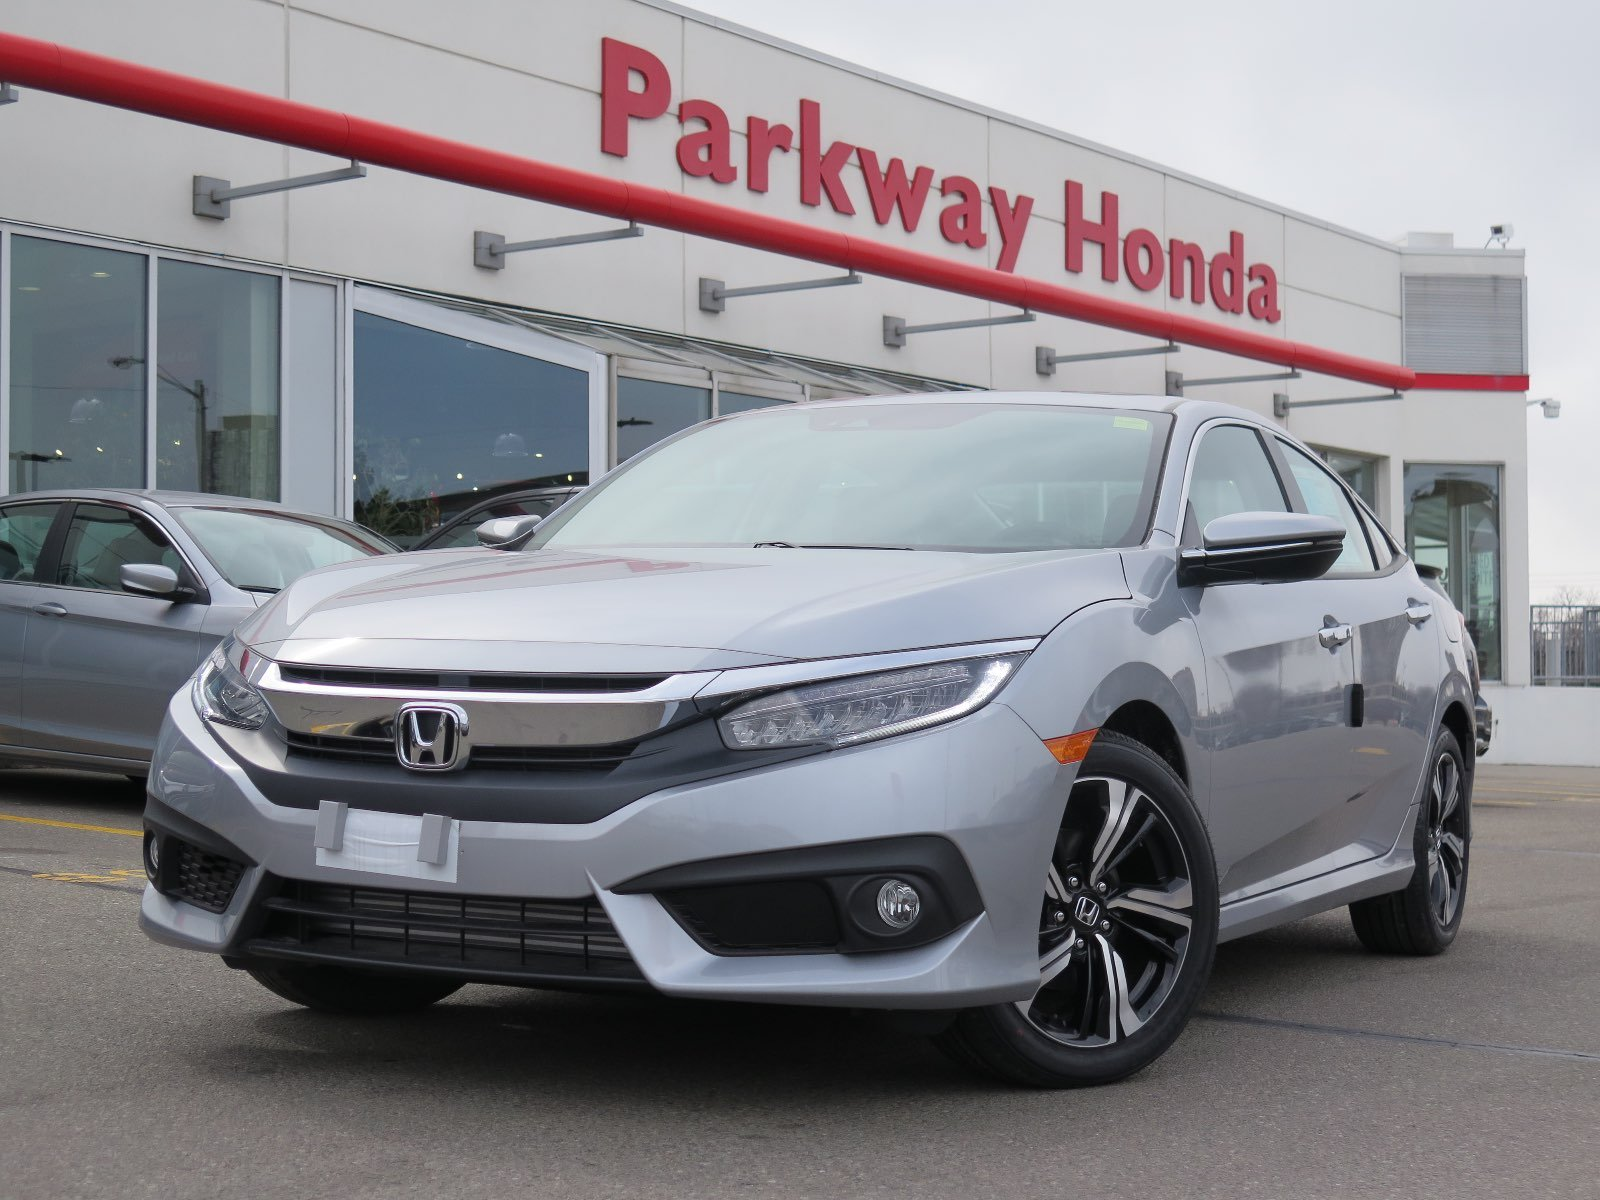 Pre-Owned 2018 Honda Civic Sedan Touring - Demo